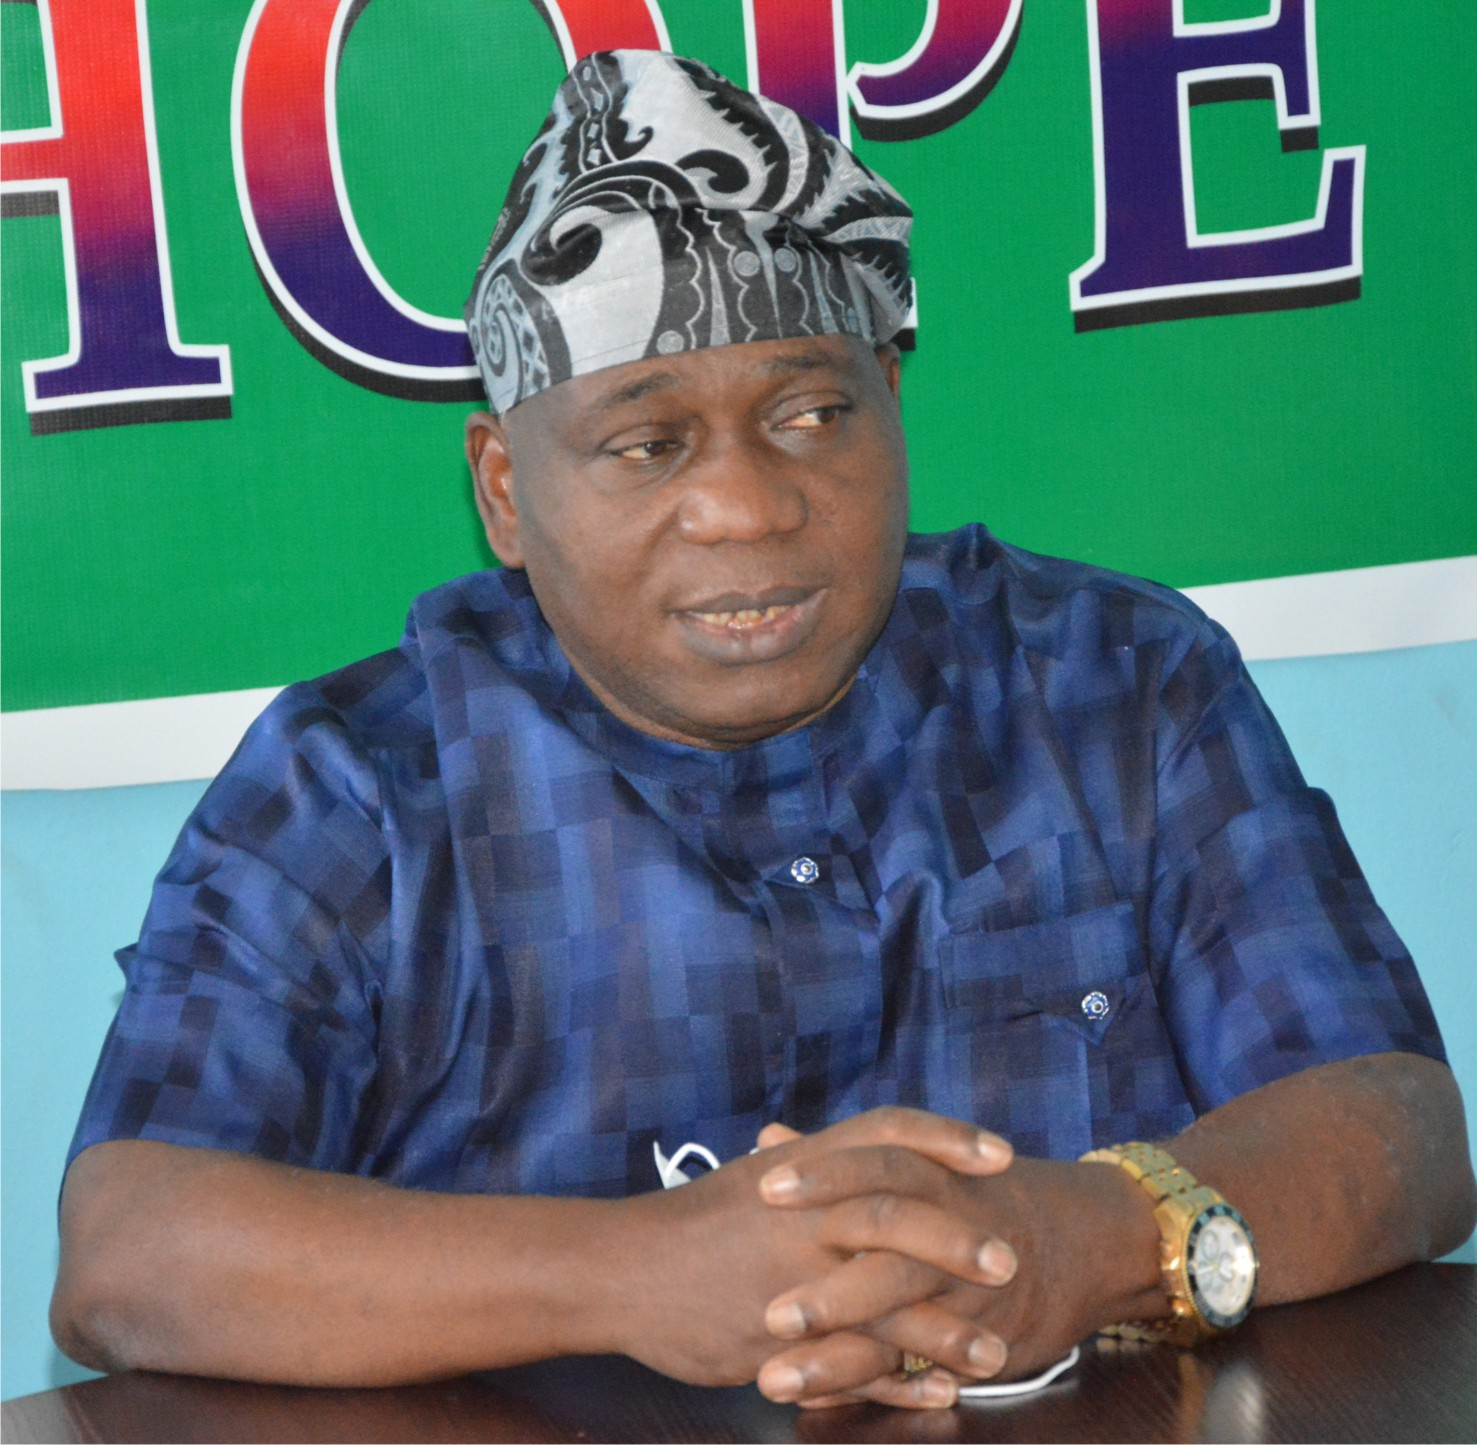 Our experience with herdsmen can cause  weeping -Cassava Growers President